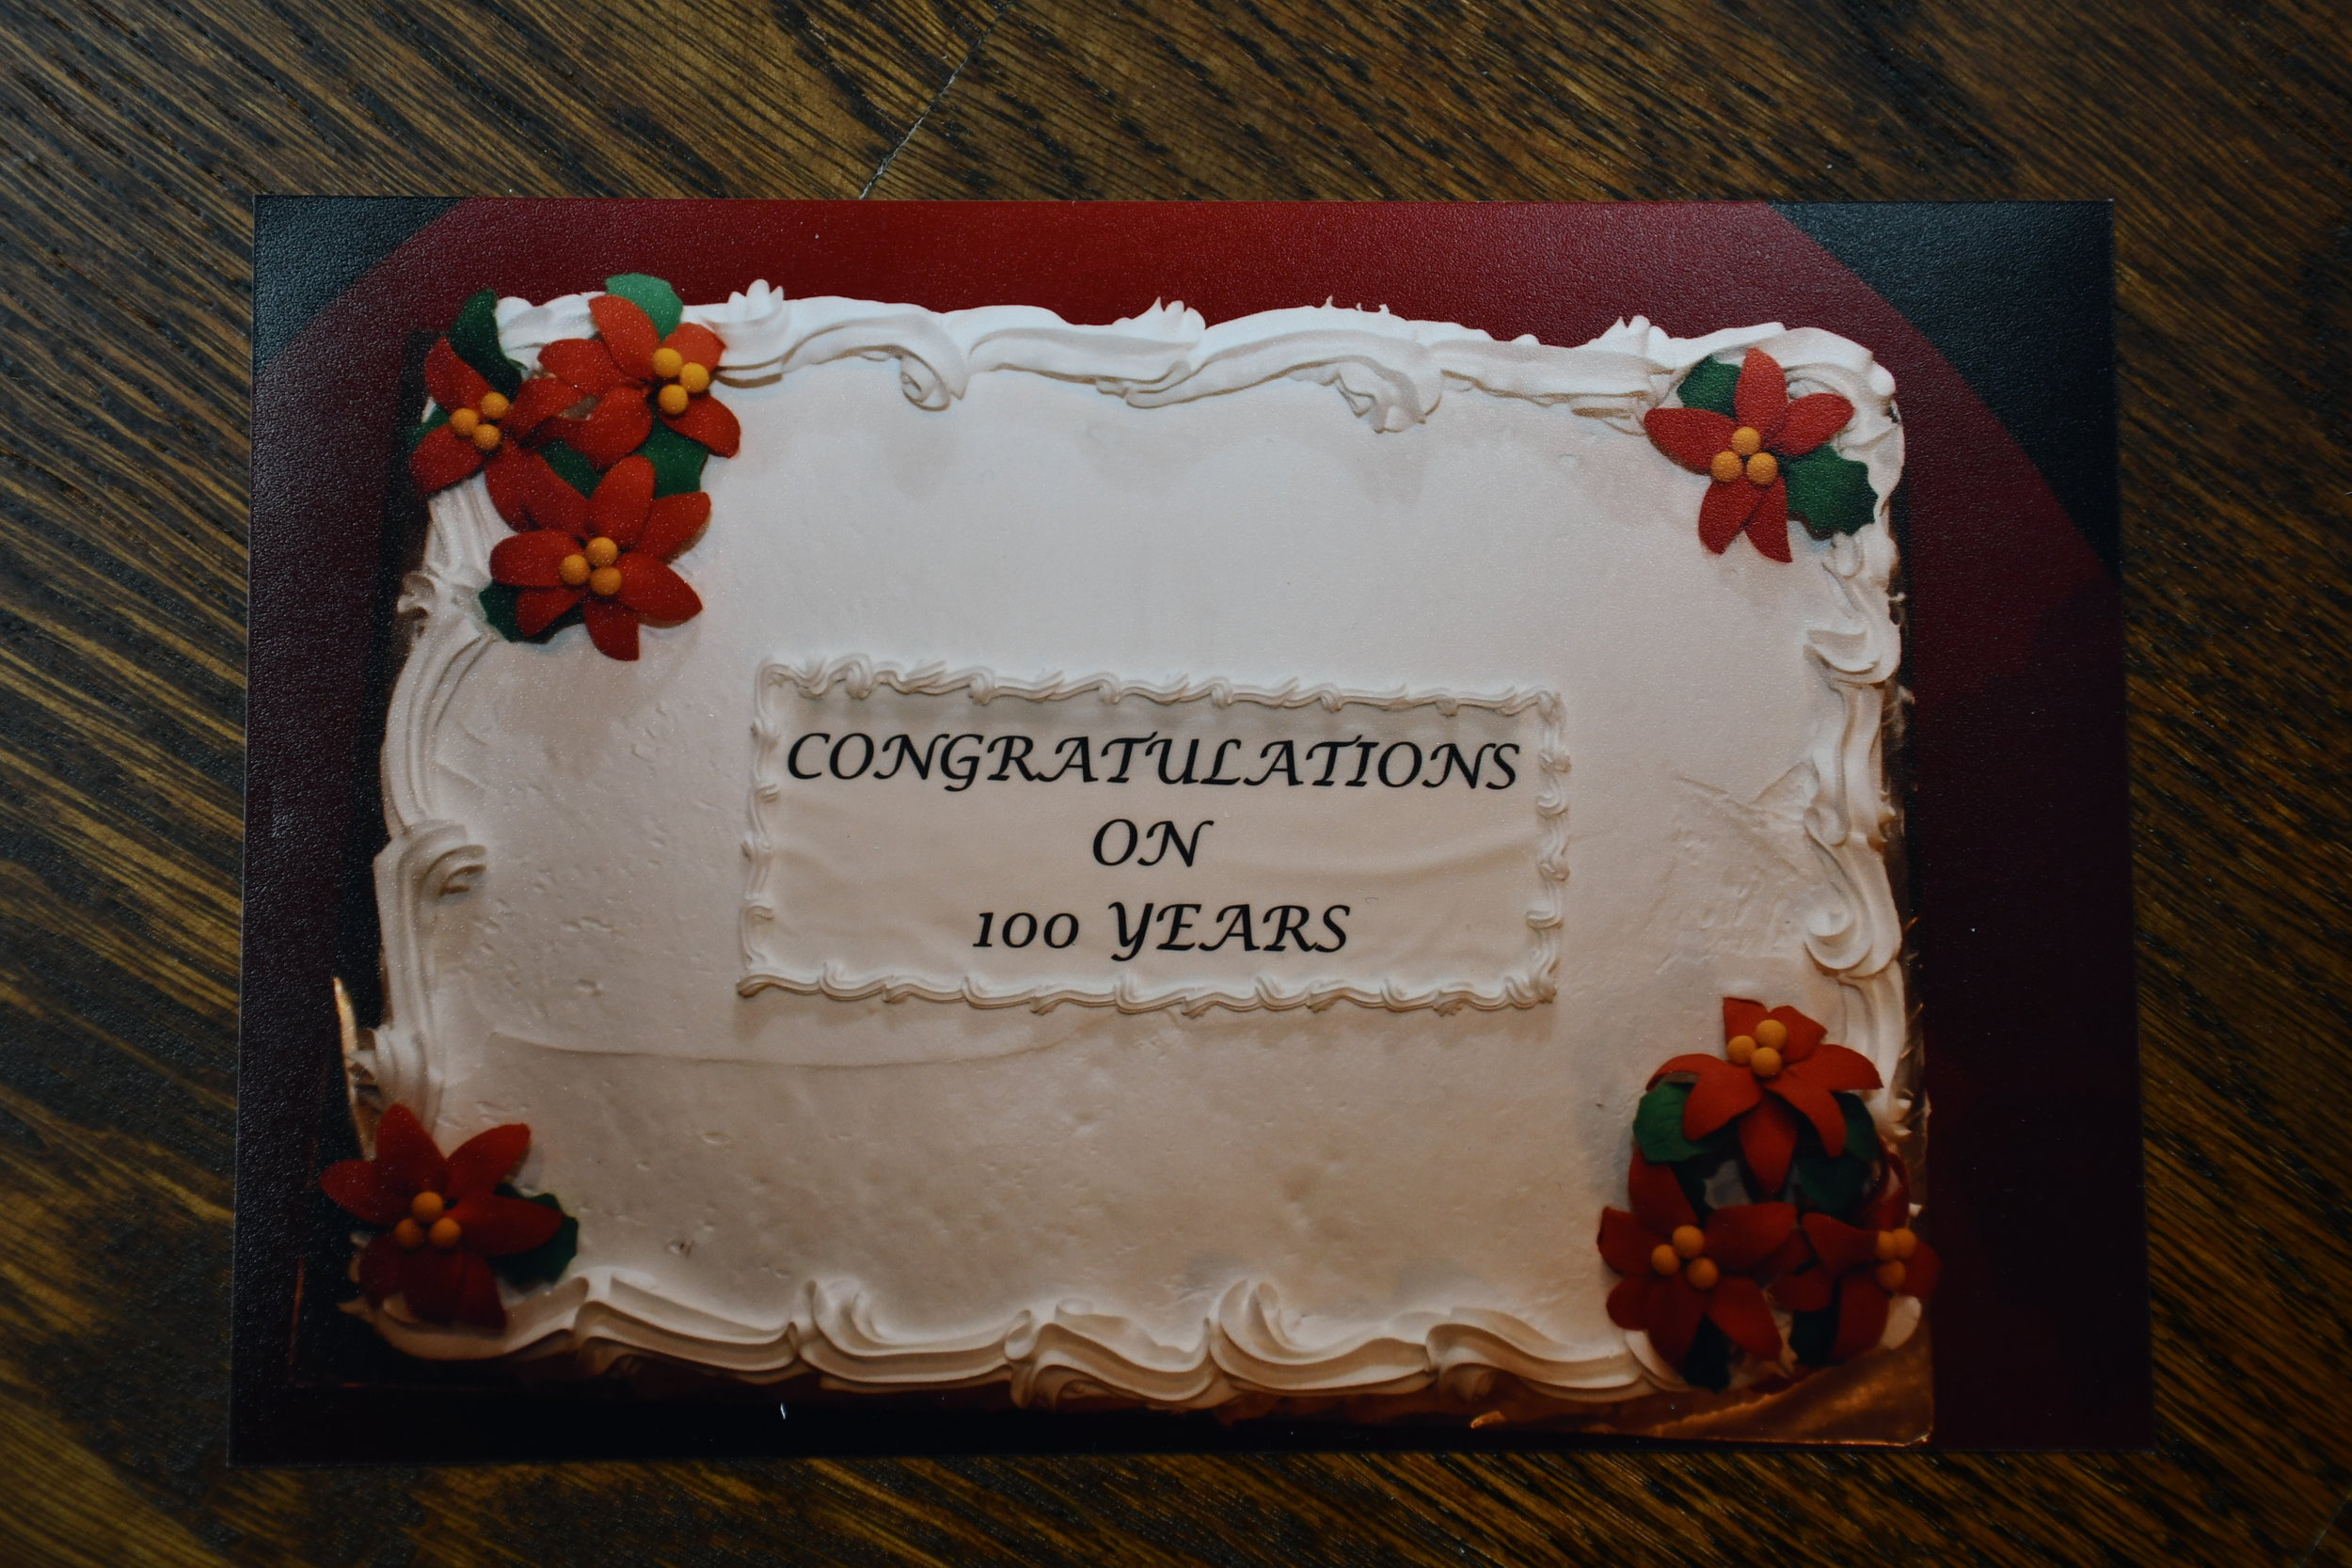 Thompson & Kuenster Funeral Home - 100 Year Celebratio 3.JPG